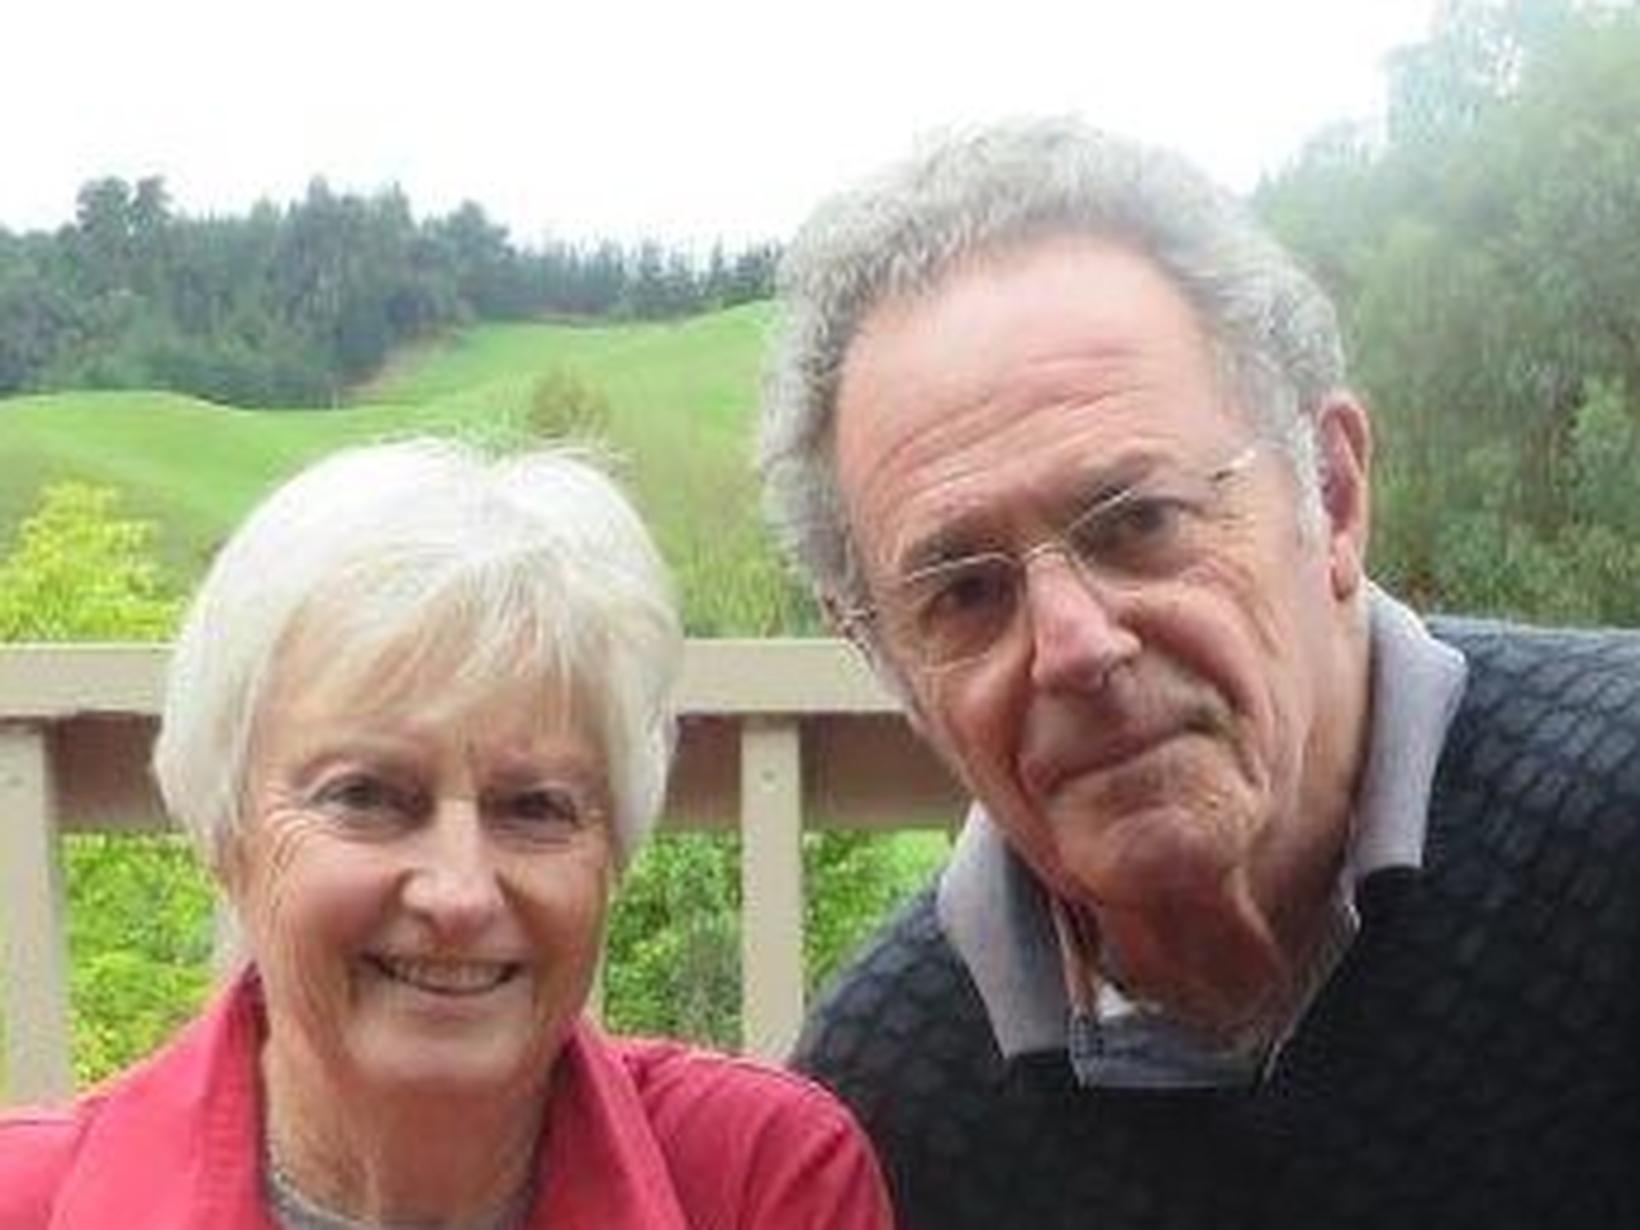 Fran & Dave from Nelson, New Zealand